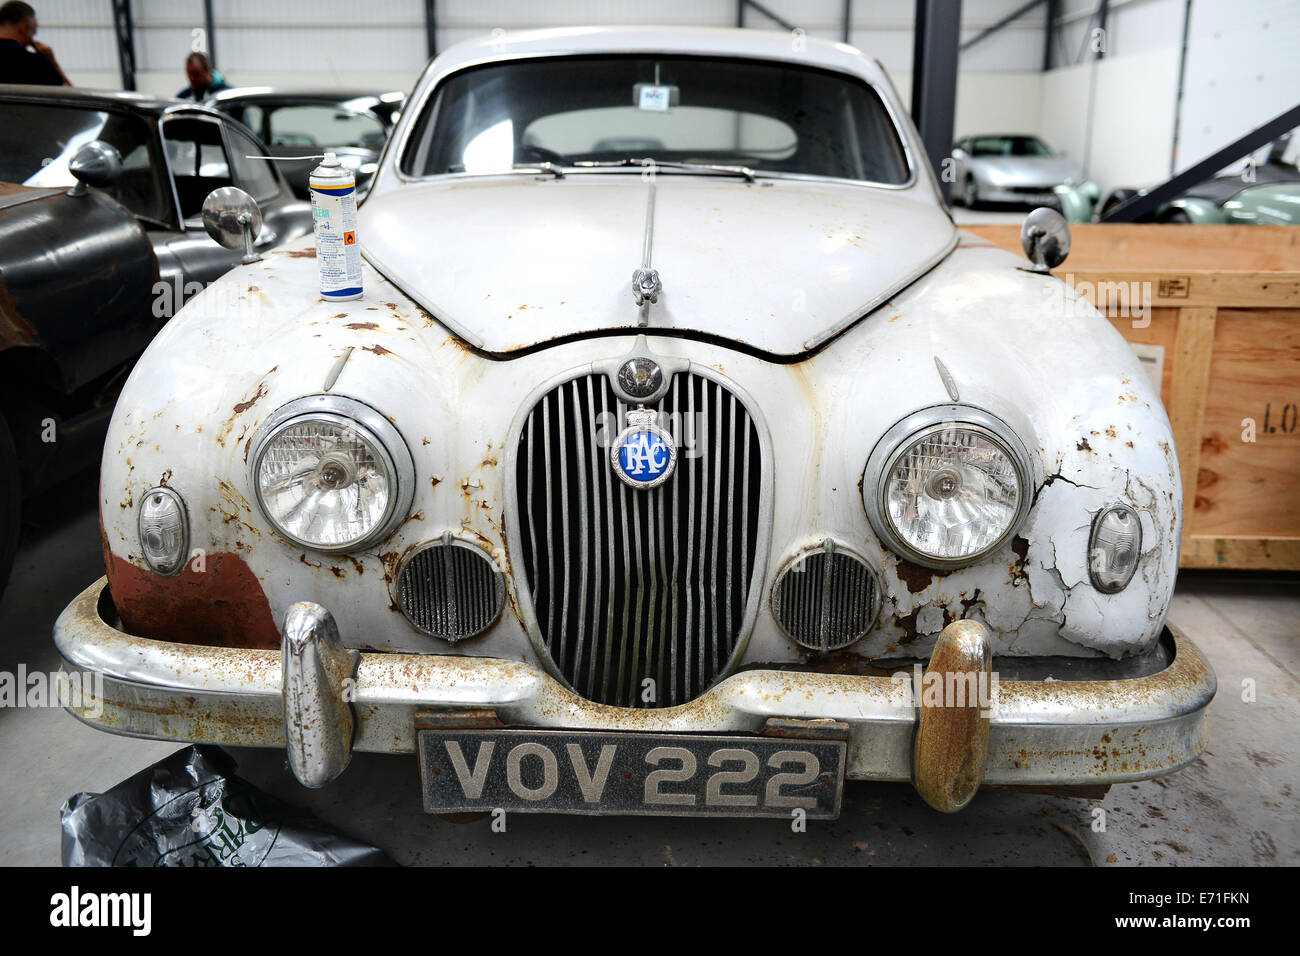 Old Vintage Cars Jaguar Car Waiting To Be Restored At Classic Motor Stock Photo Alamy